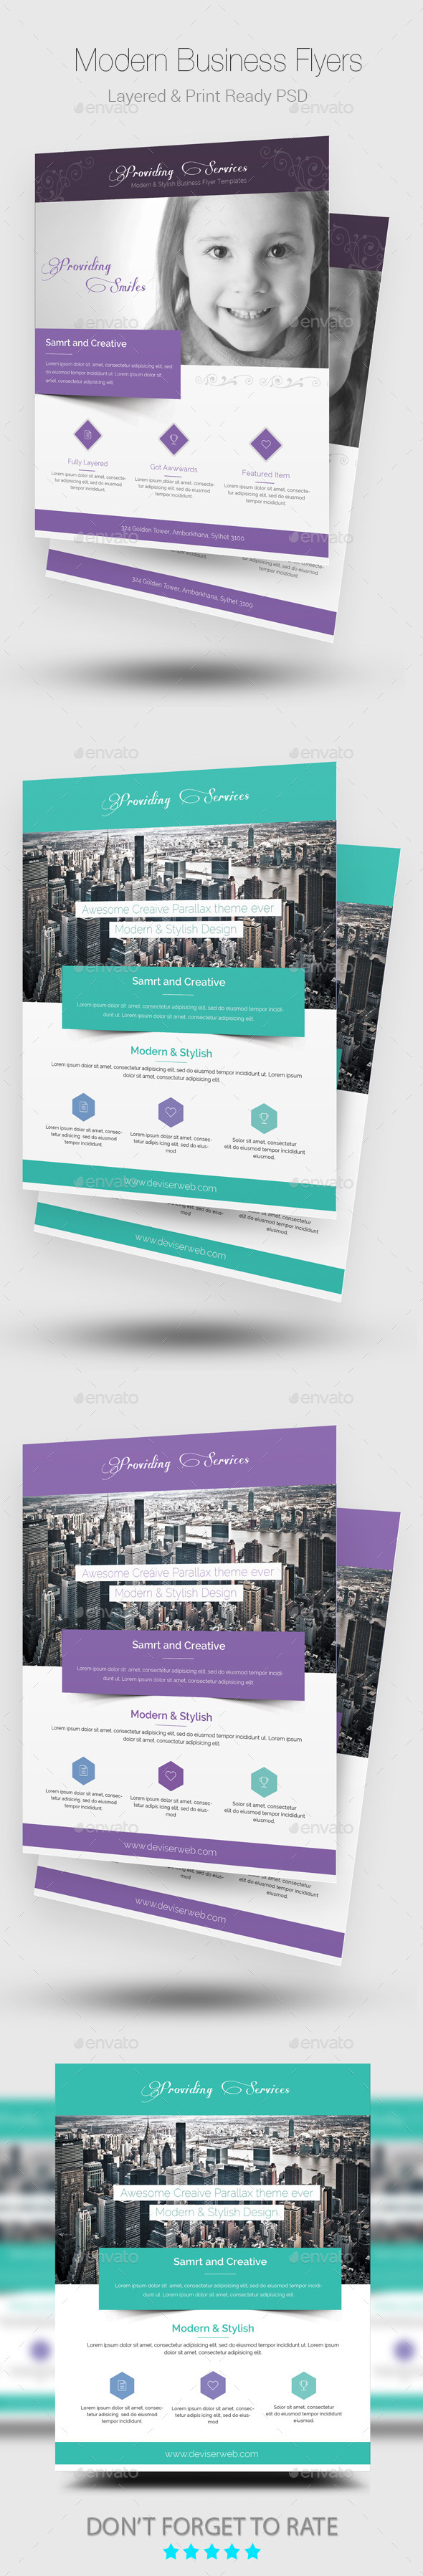 Elegant Business Flyer Templates - Corporate Flyers